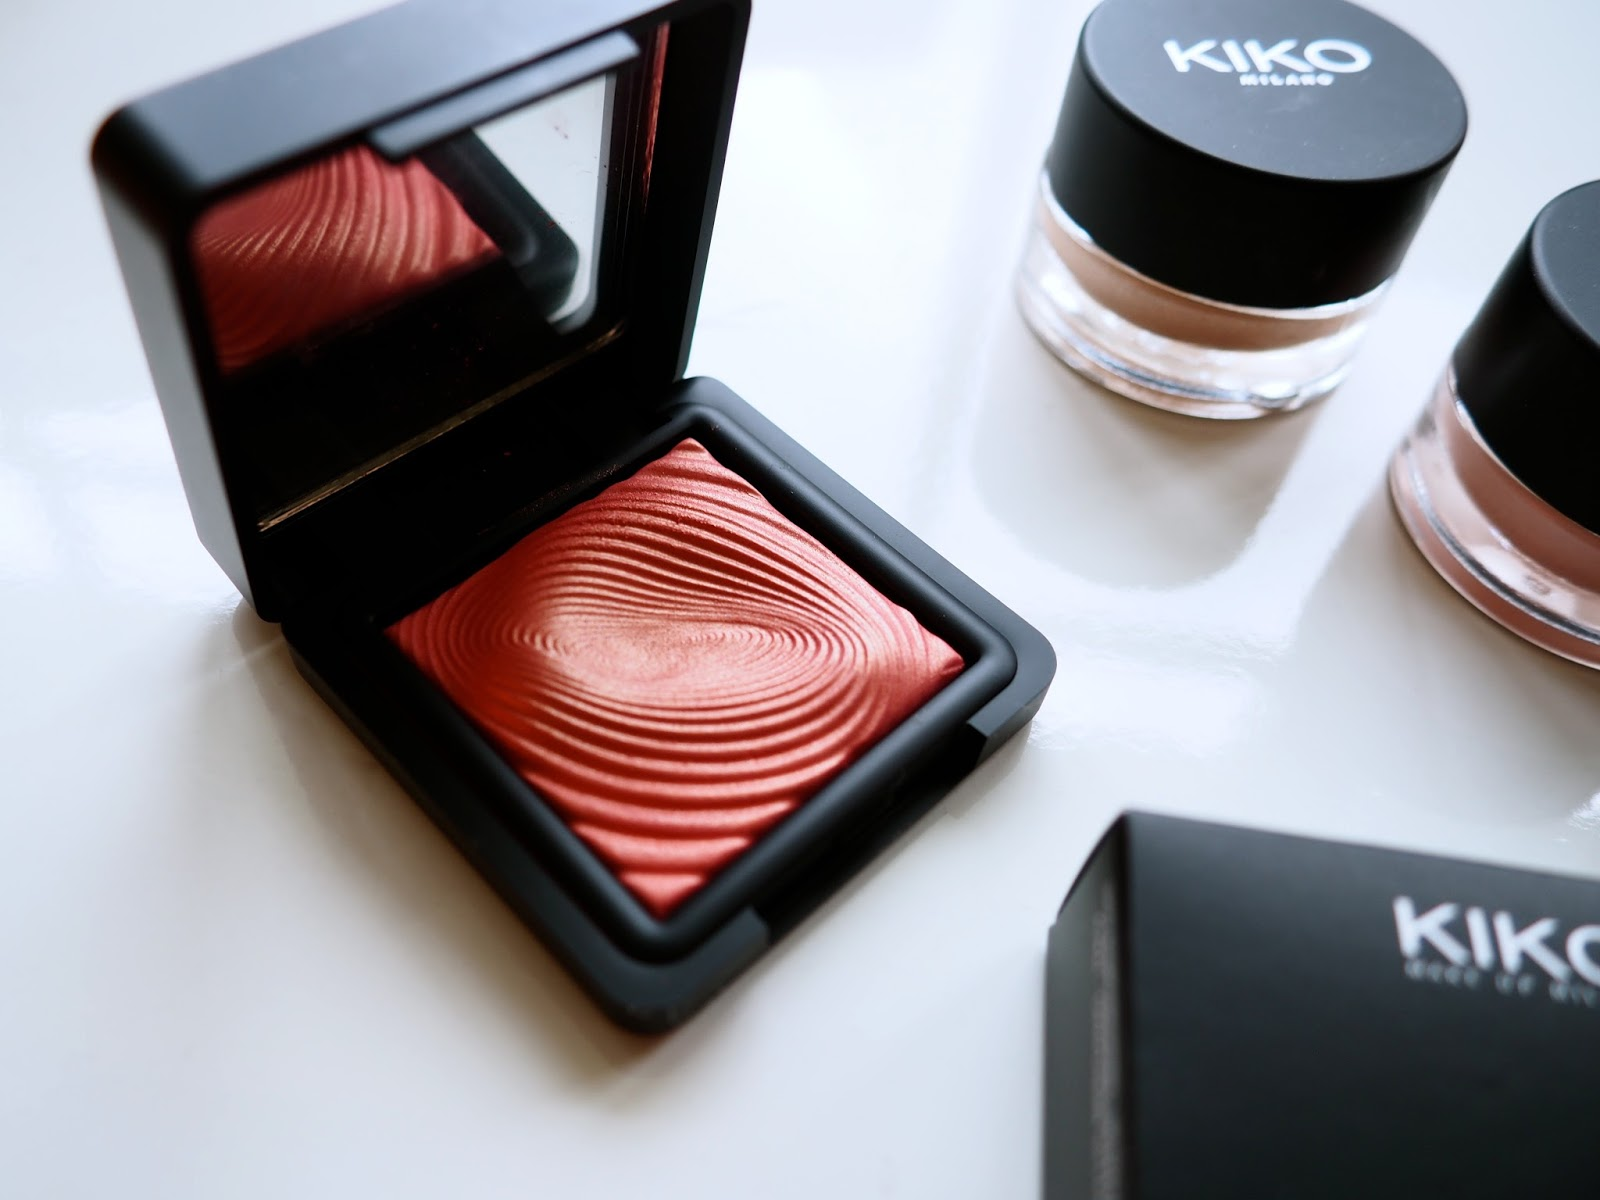 It's Cultured Kiko Haul Kiko Water Eyeshadow 218 Grapefruit Pink